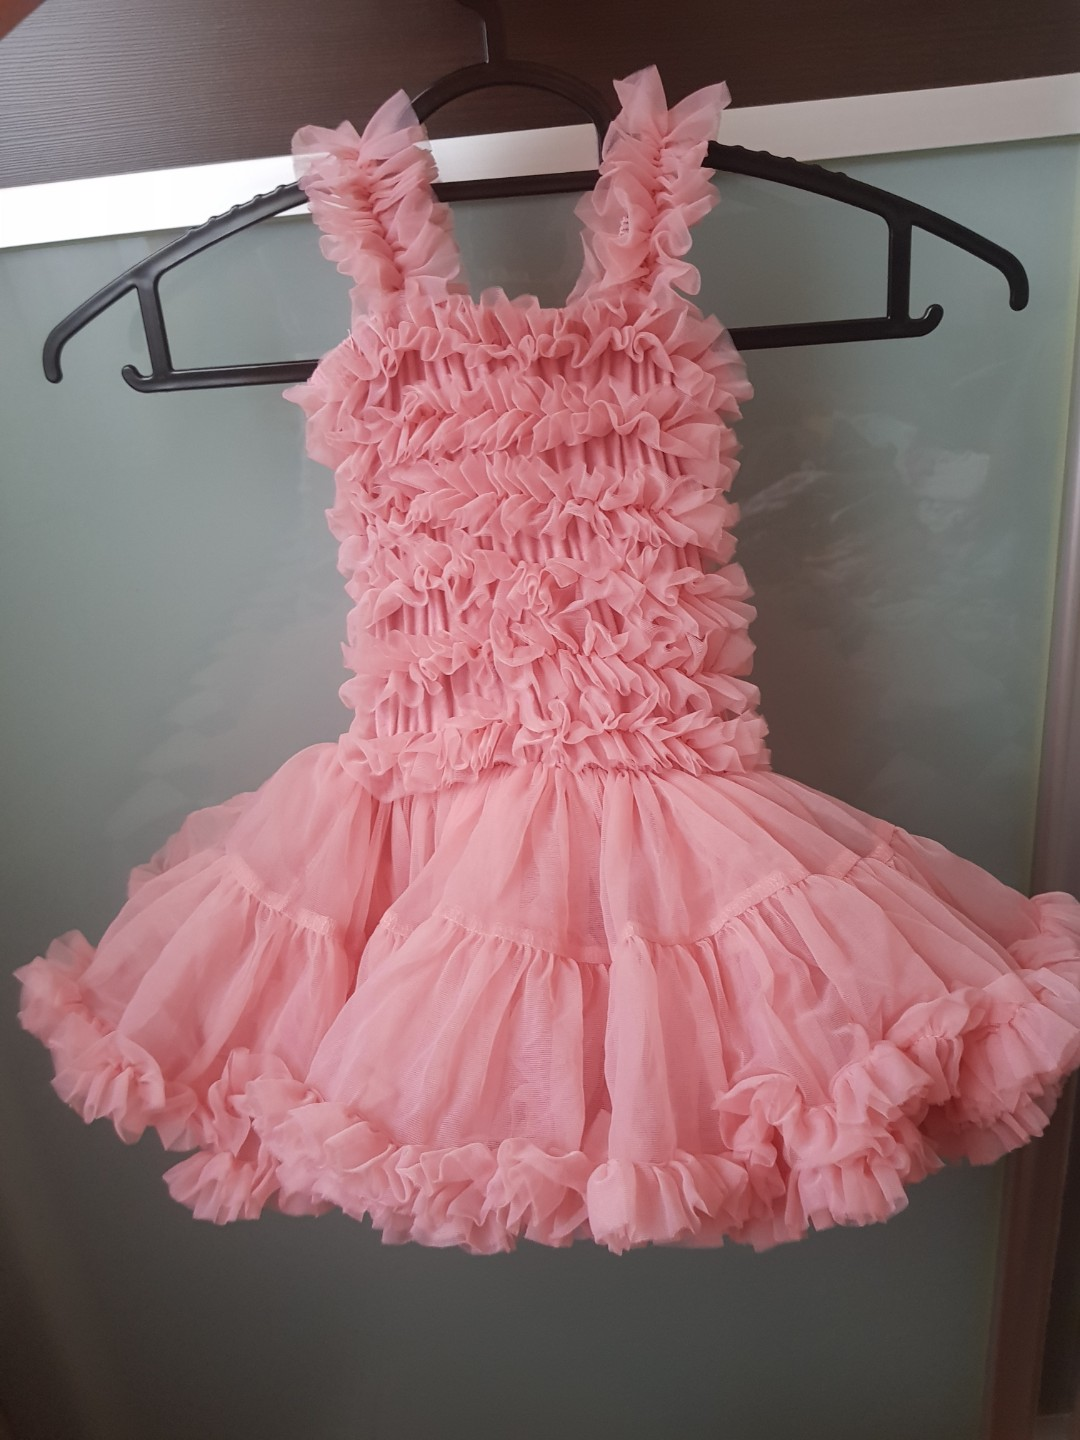 Dress Gown For 1 Year Old Babies Kids Apparel On Carousell